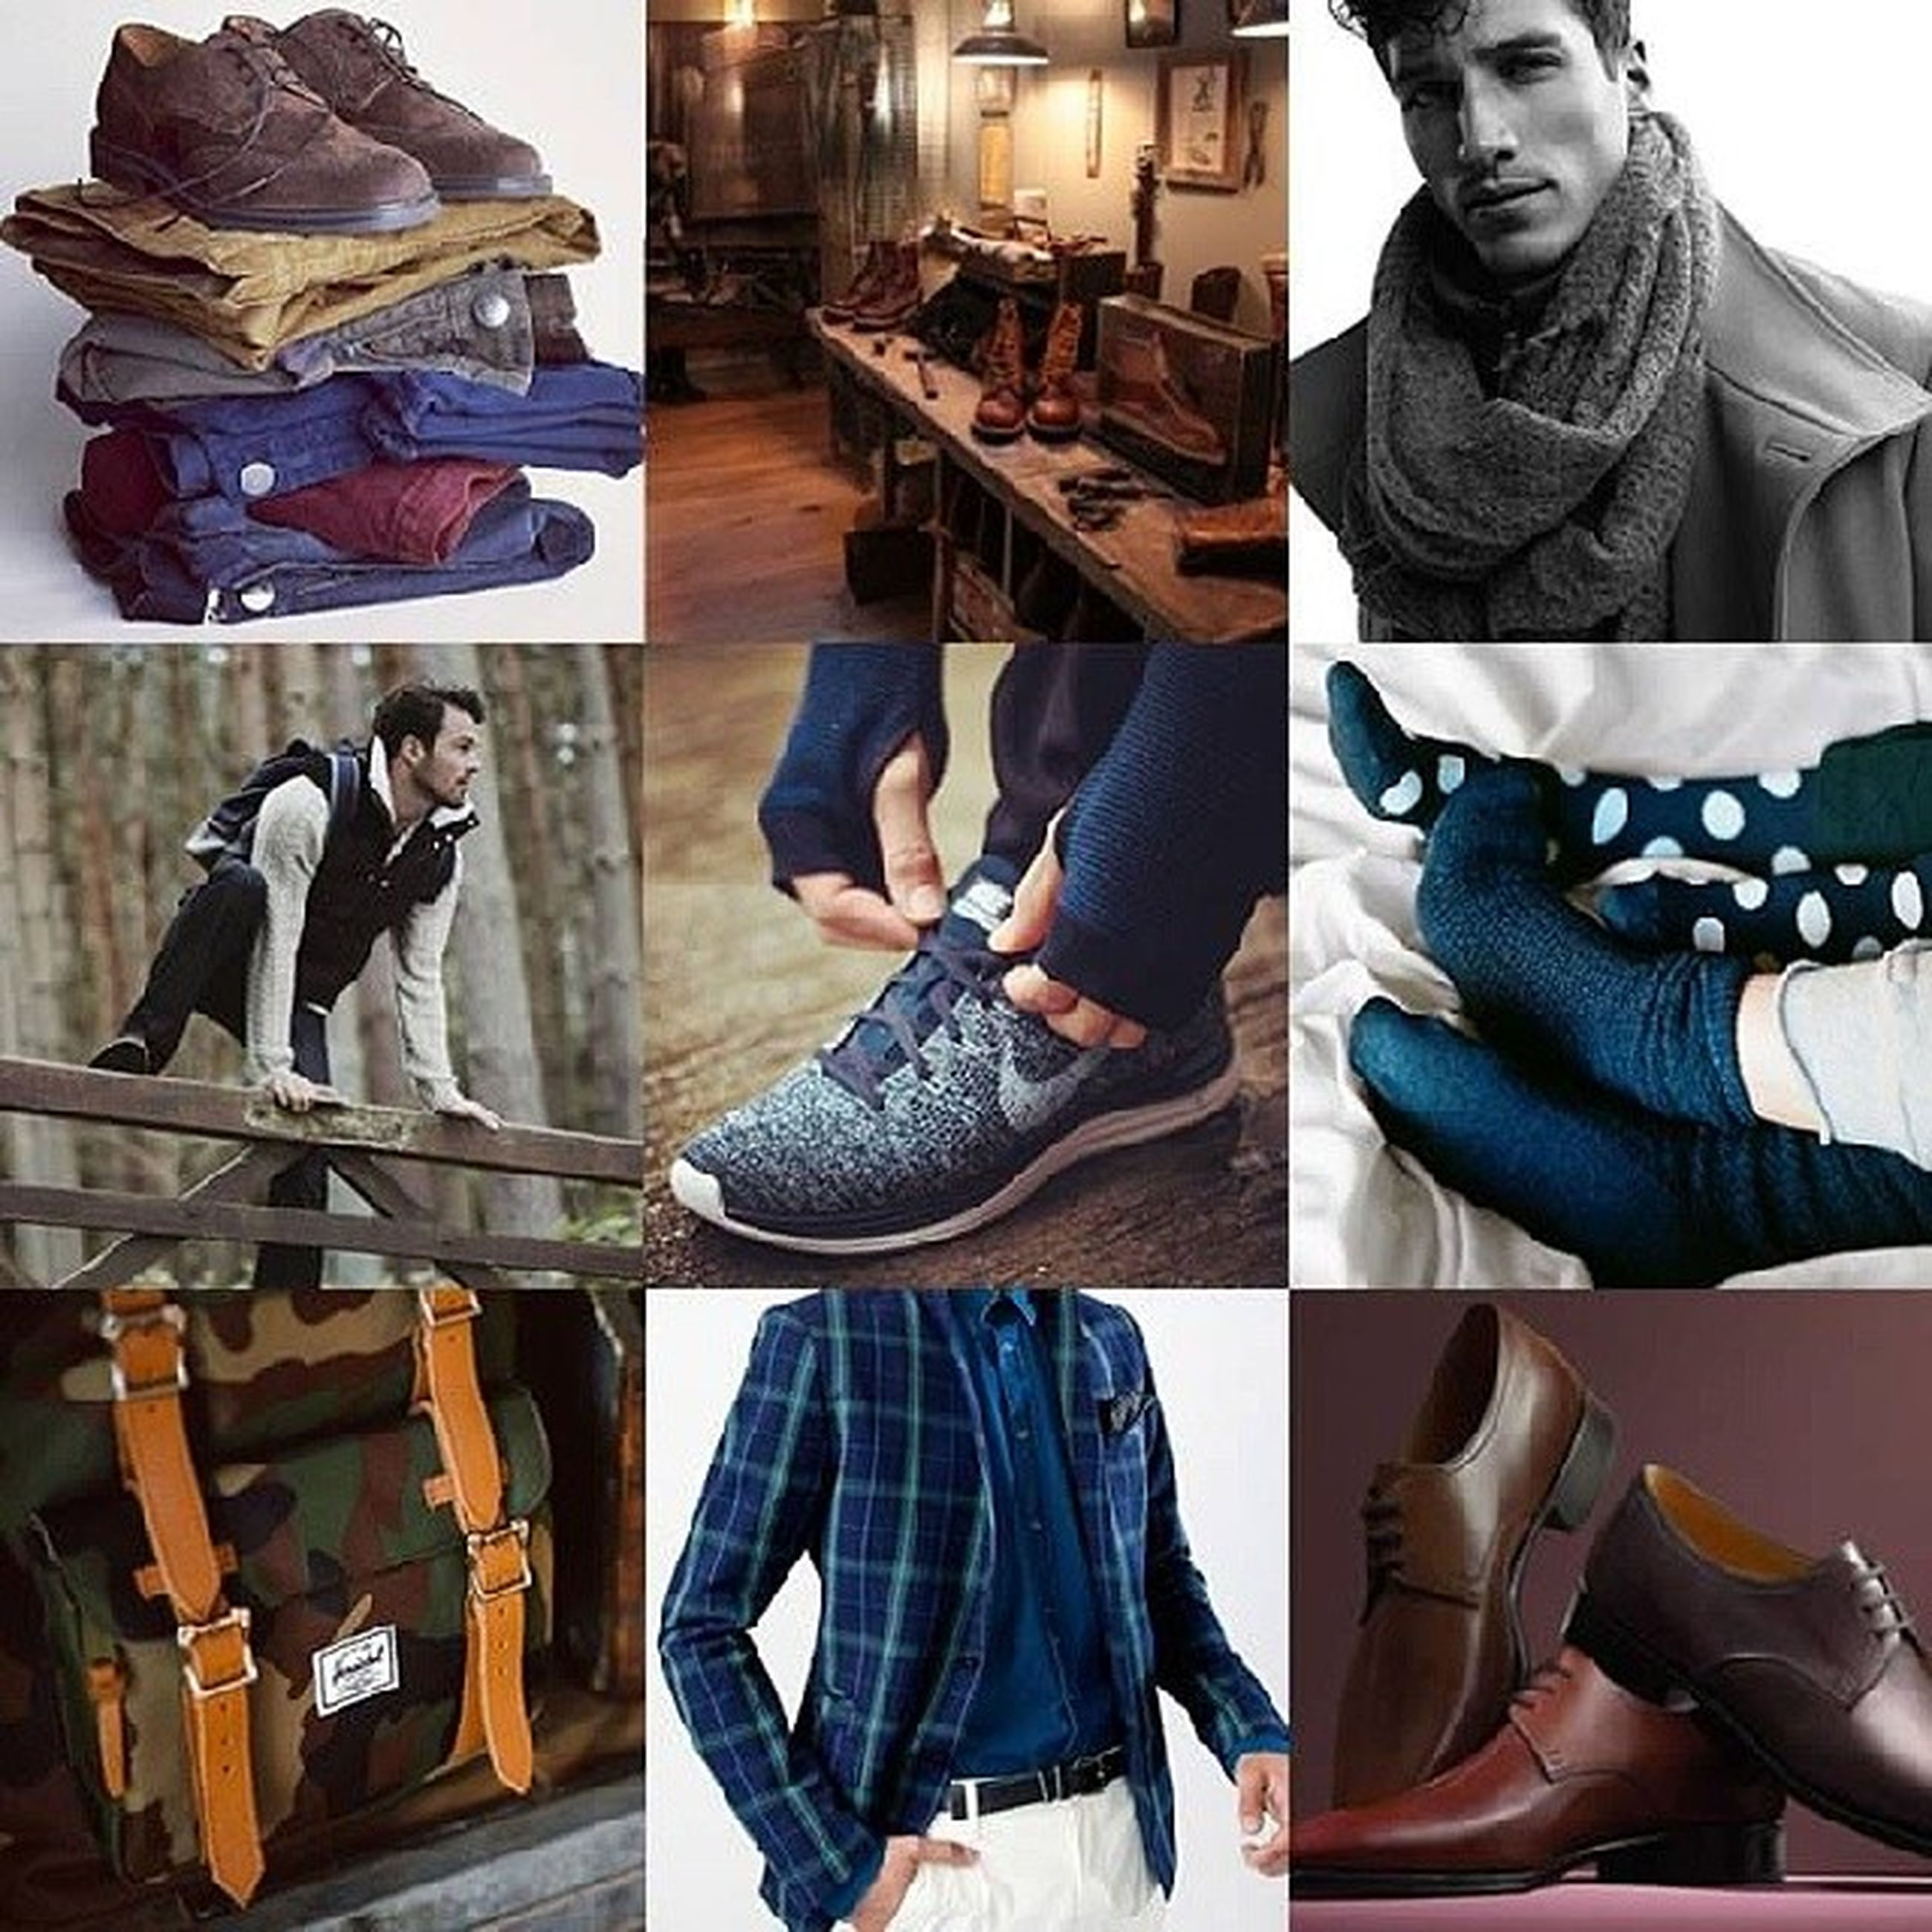 lifestyles, sitting, casual clothing, men, chair, standing, leisure activity, shoe, person, togetherness, relaxation, clothing, shopping, day, traditional clothing, low section